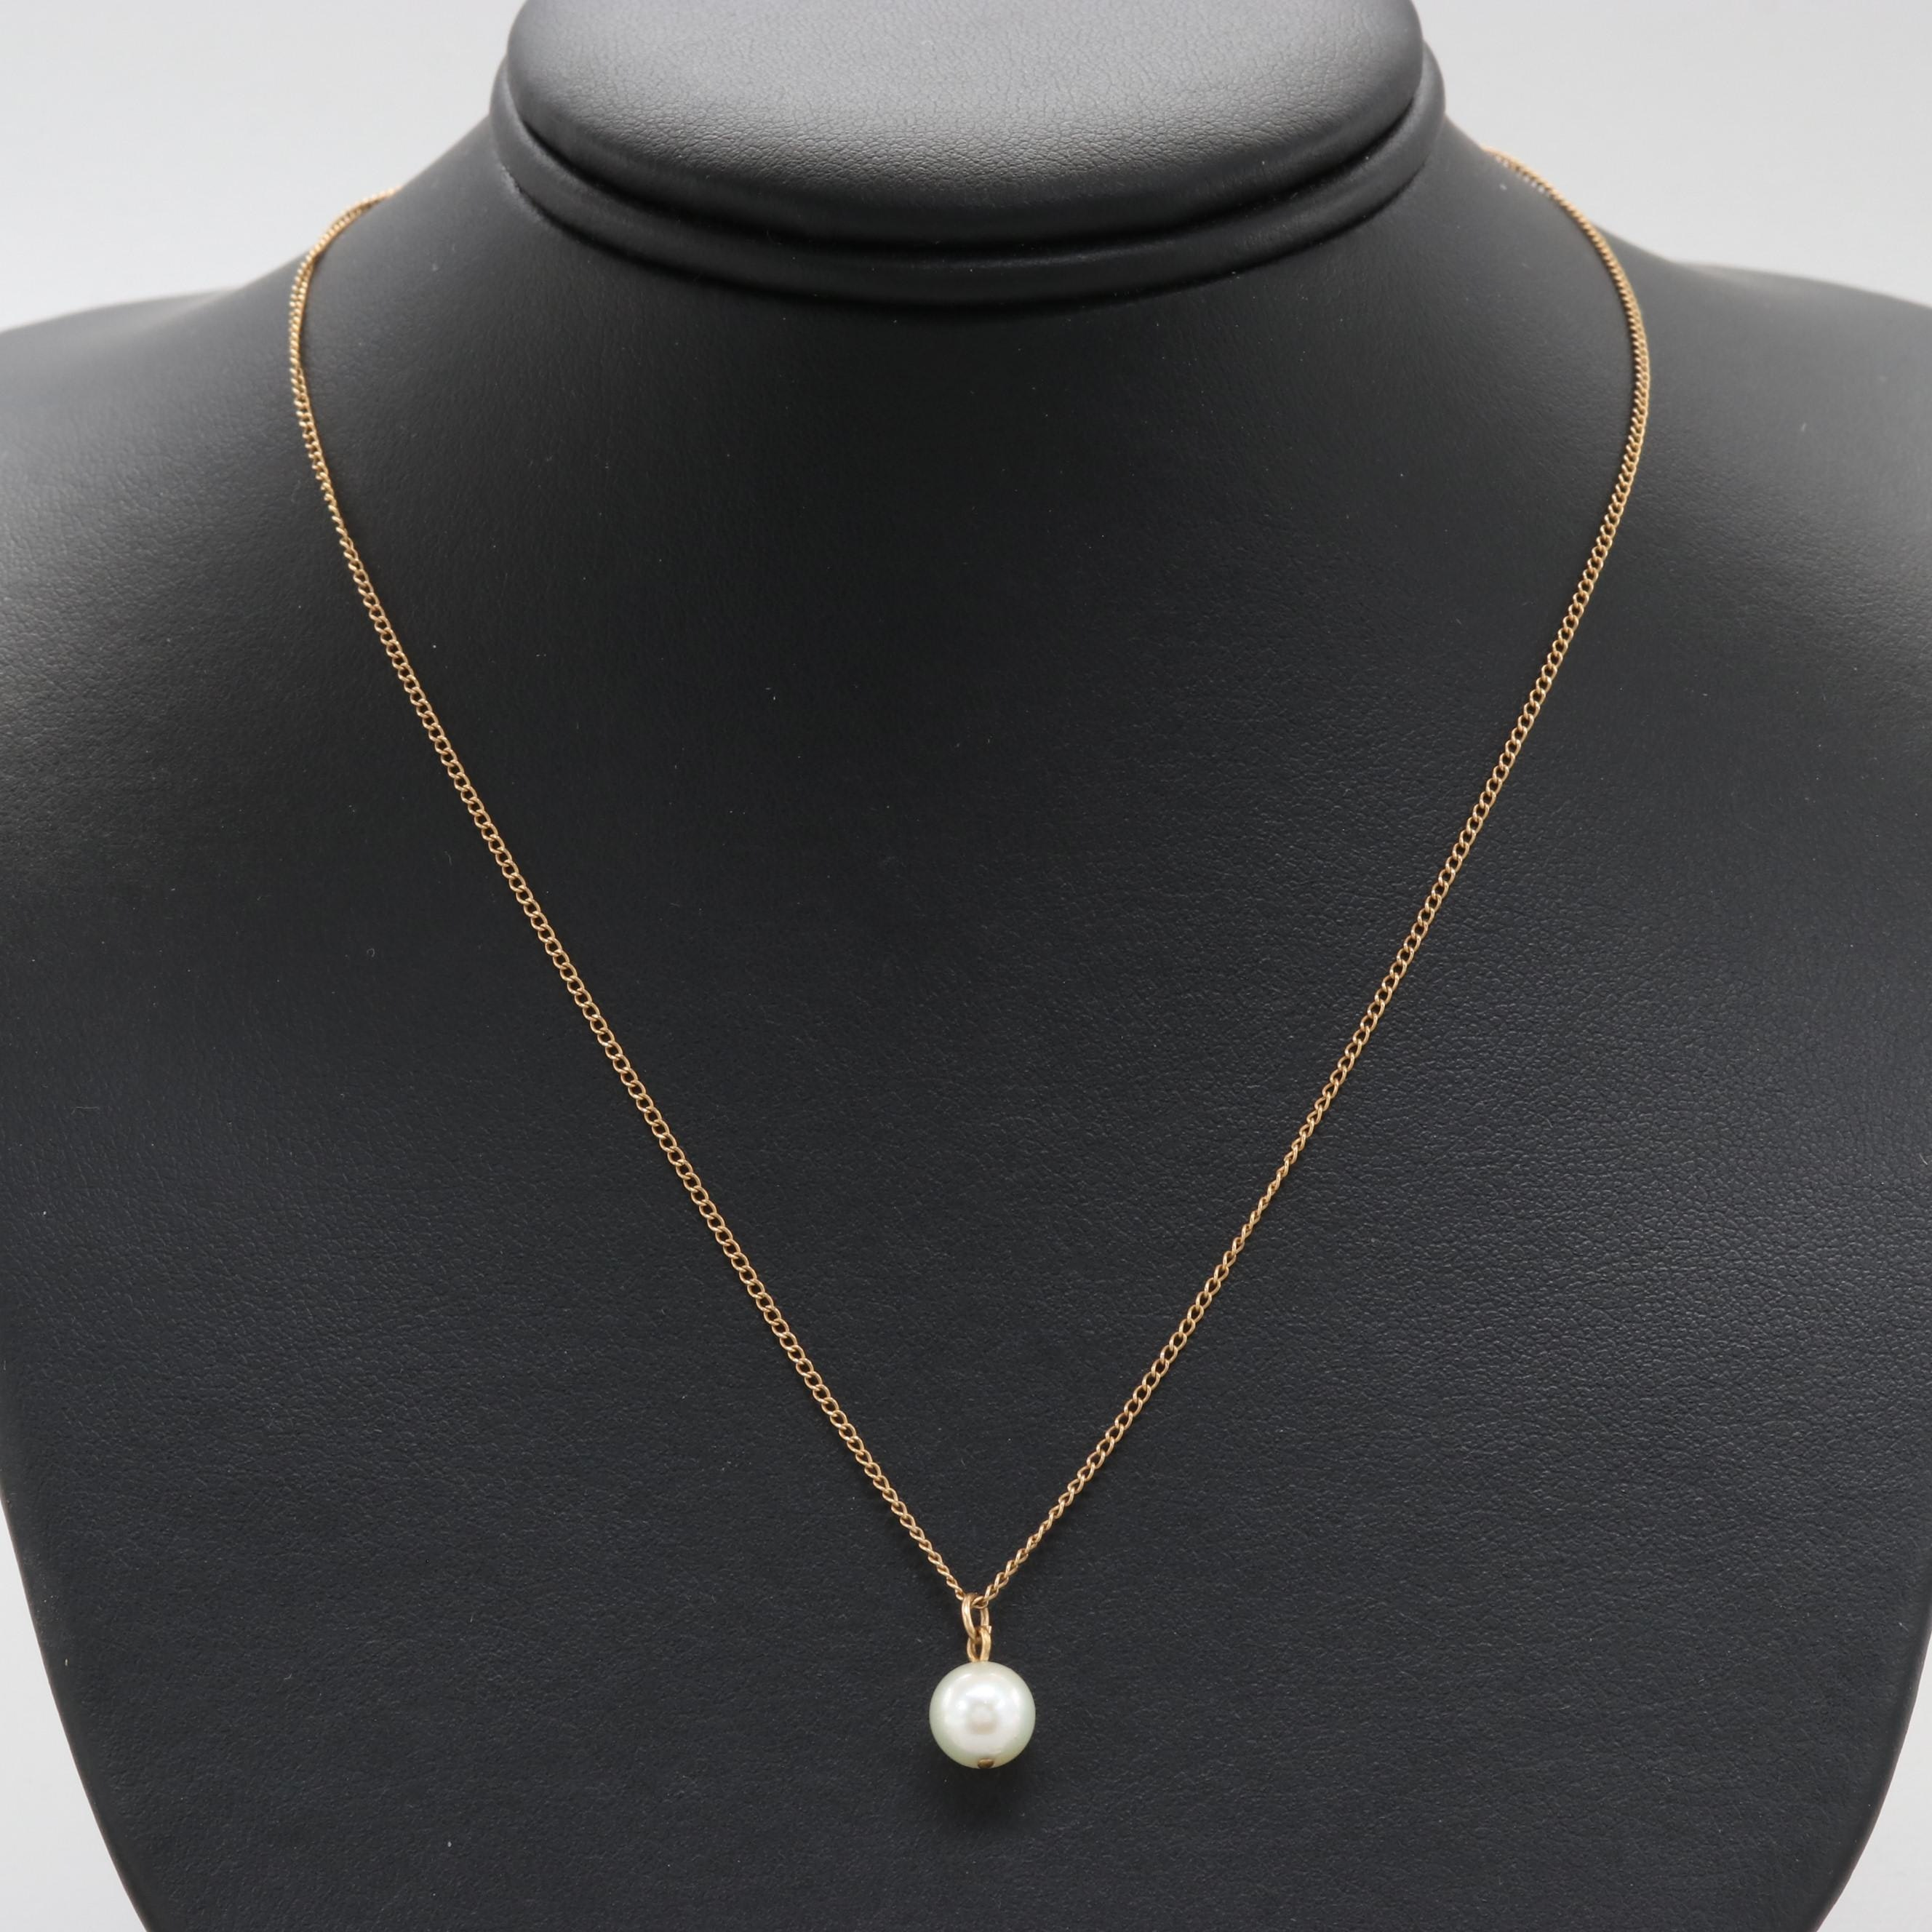 14K Yellow Gold Cultured Pearl Pendant Necklace